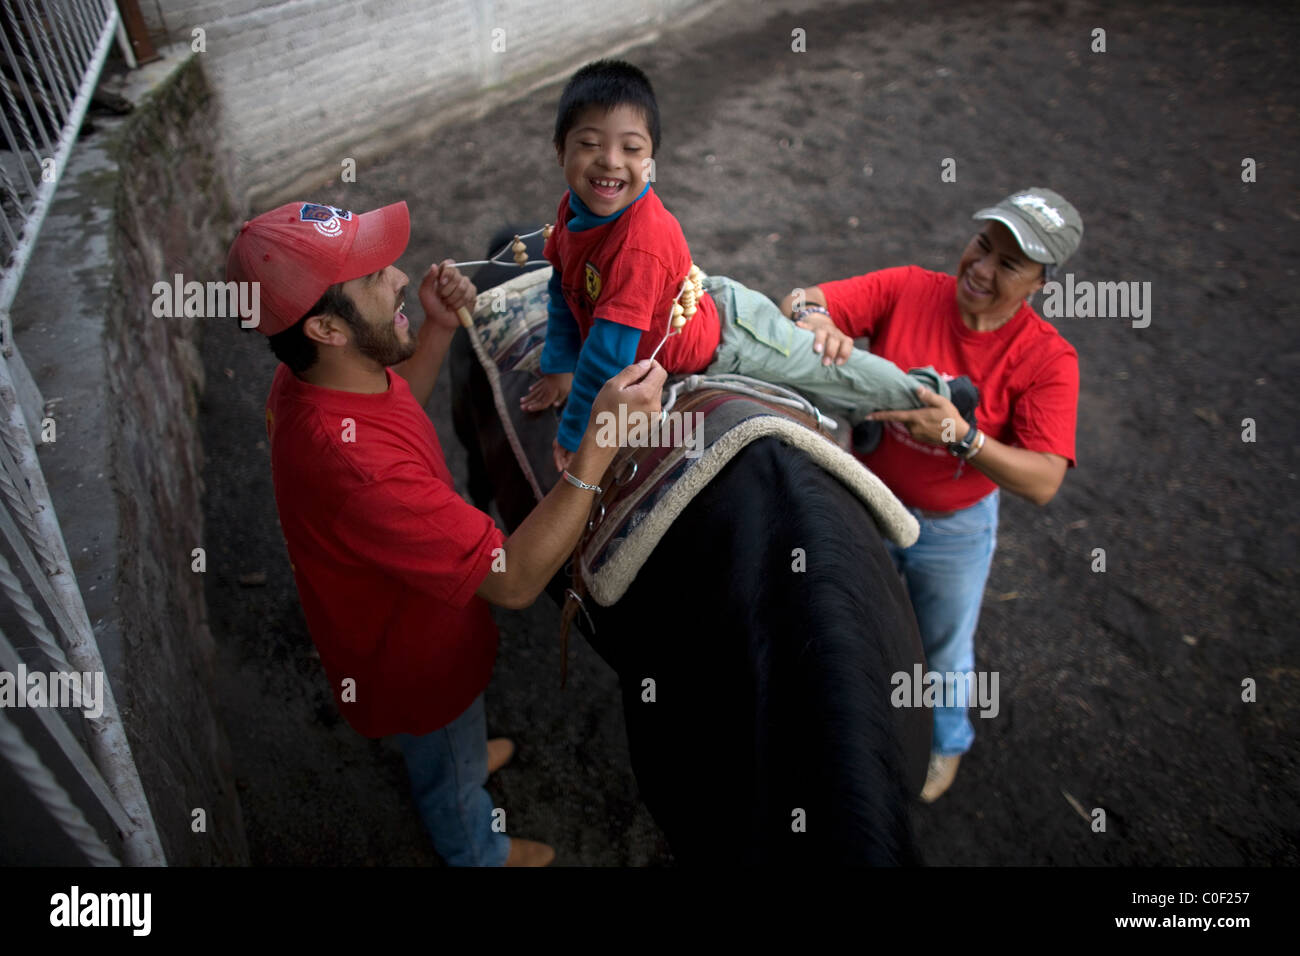 Equine therapists treat a boy who has infantile cerebral paralysis during his horse therapy session in Mexico City - Stock Image